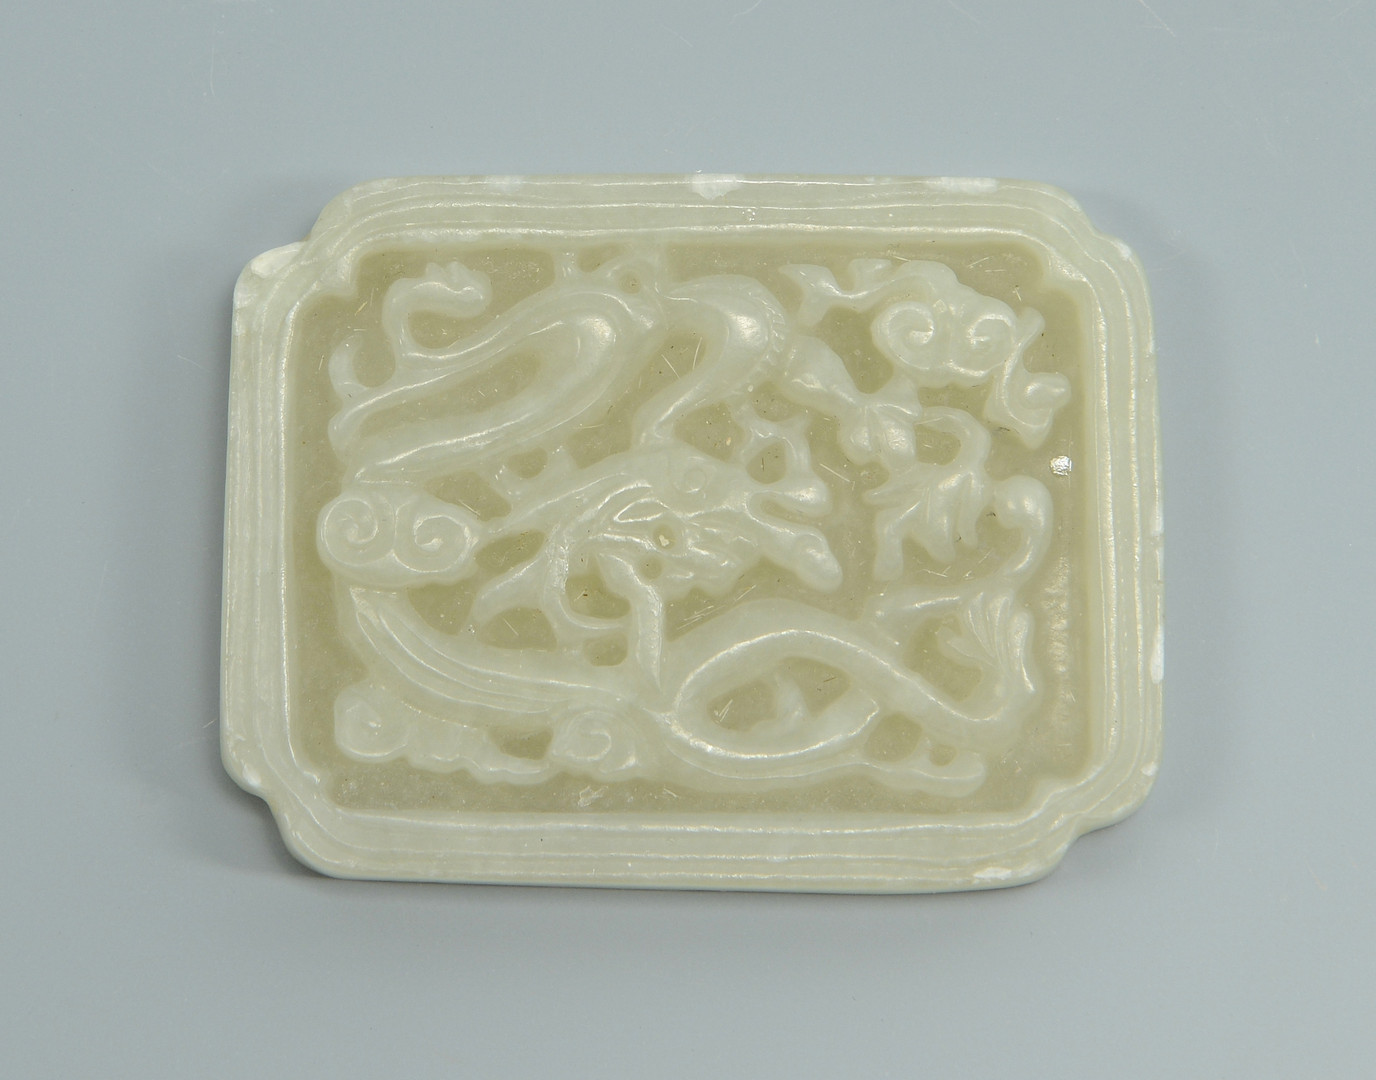 Lot 249: 3 Chinese Jade Carved Plaques